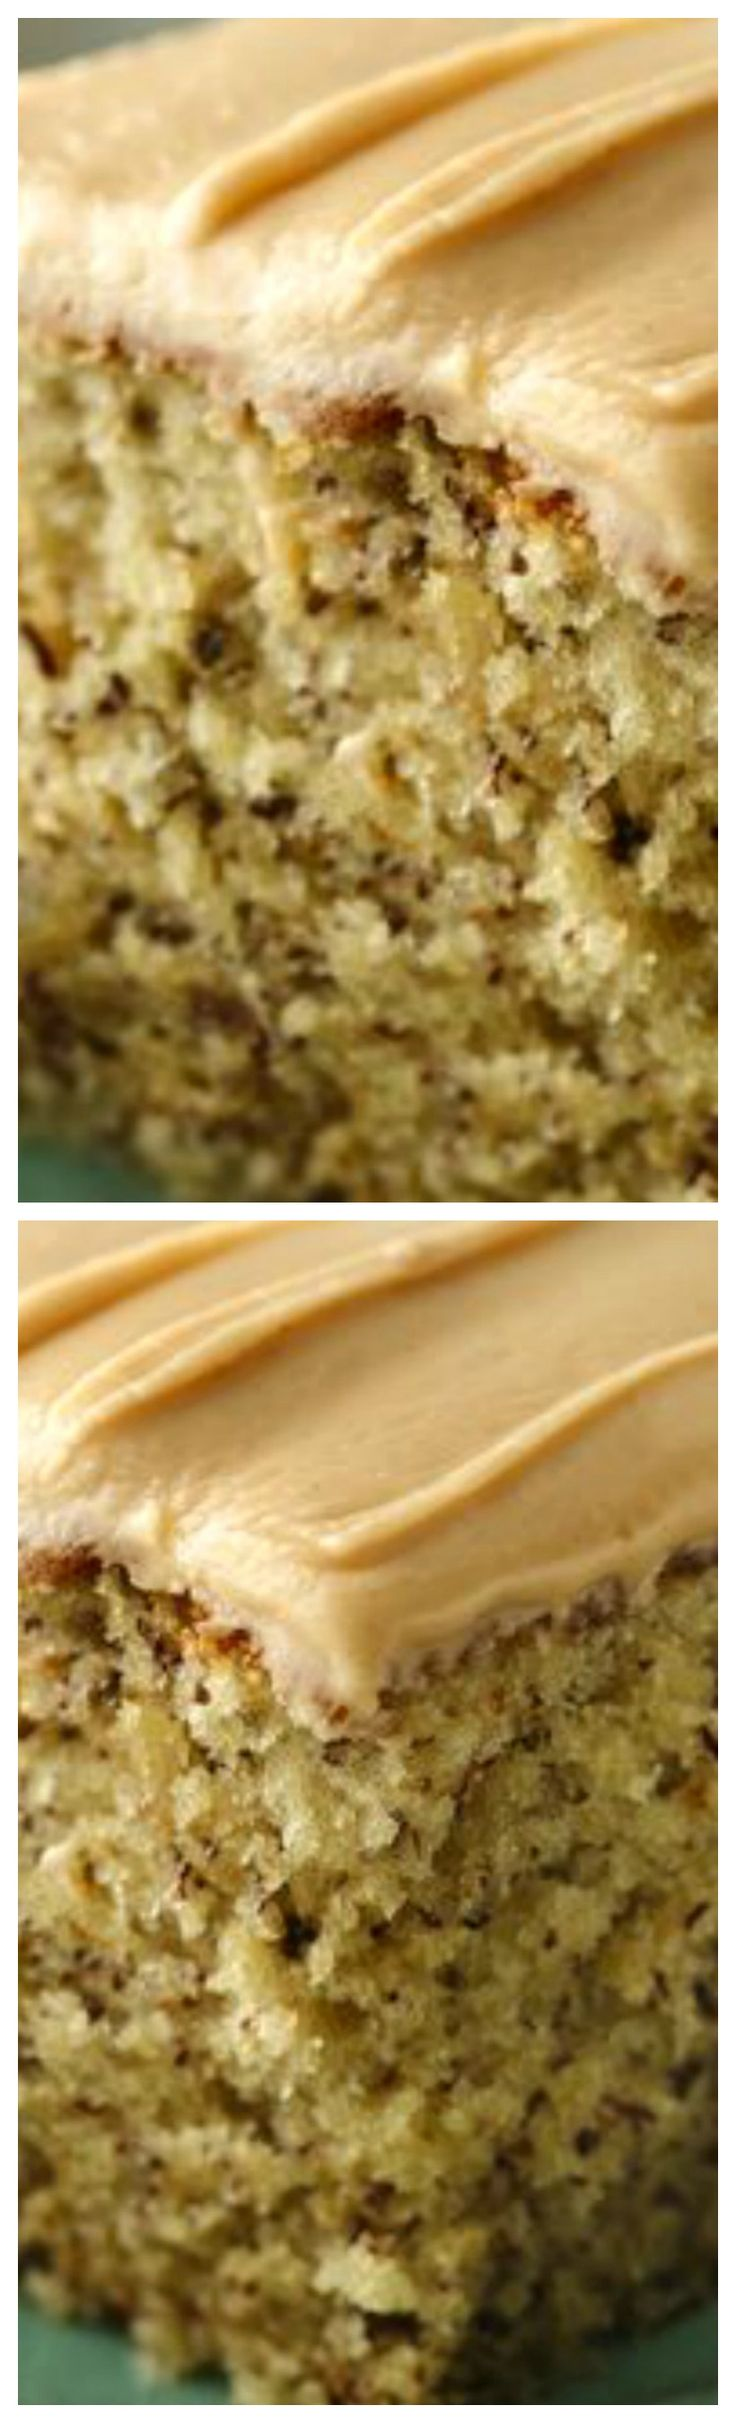 Banana-Nut Cake with Peanut Butter Frosting ~ Banana and peanut butter come together in a homemade cake that feeds a crowd.